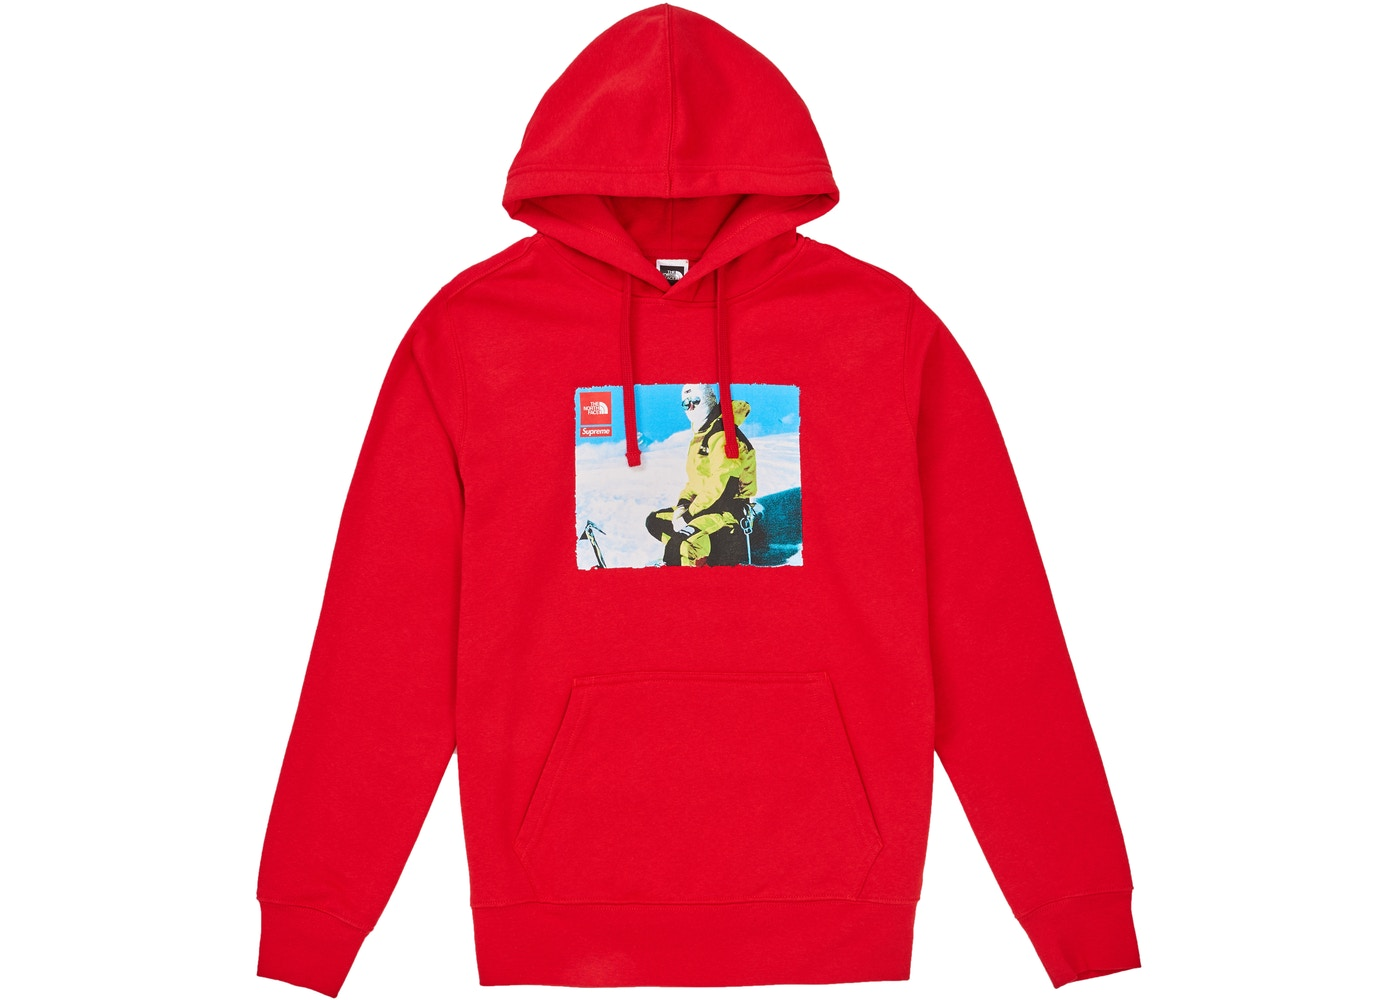 079a3699d Supreme The North Face Photo Hooded Sweatshirt Red